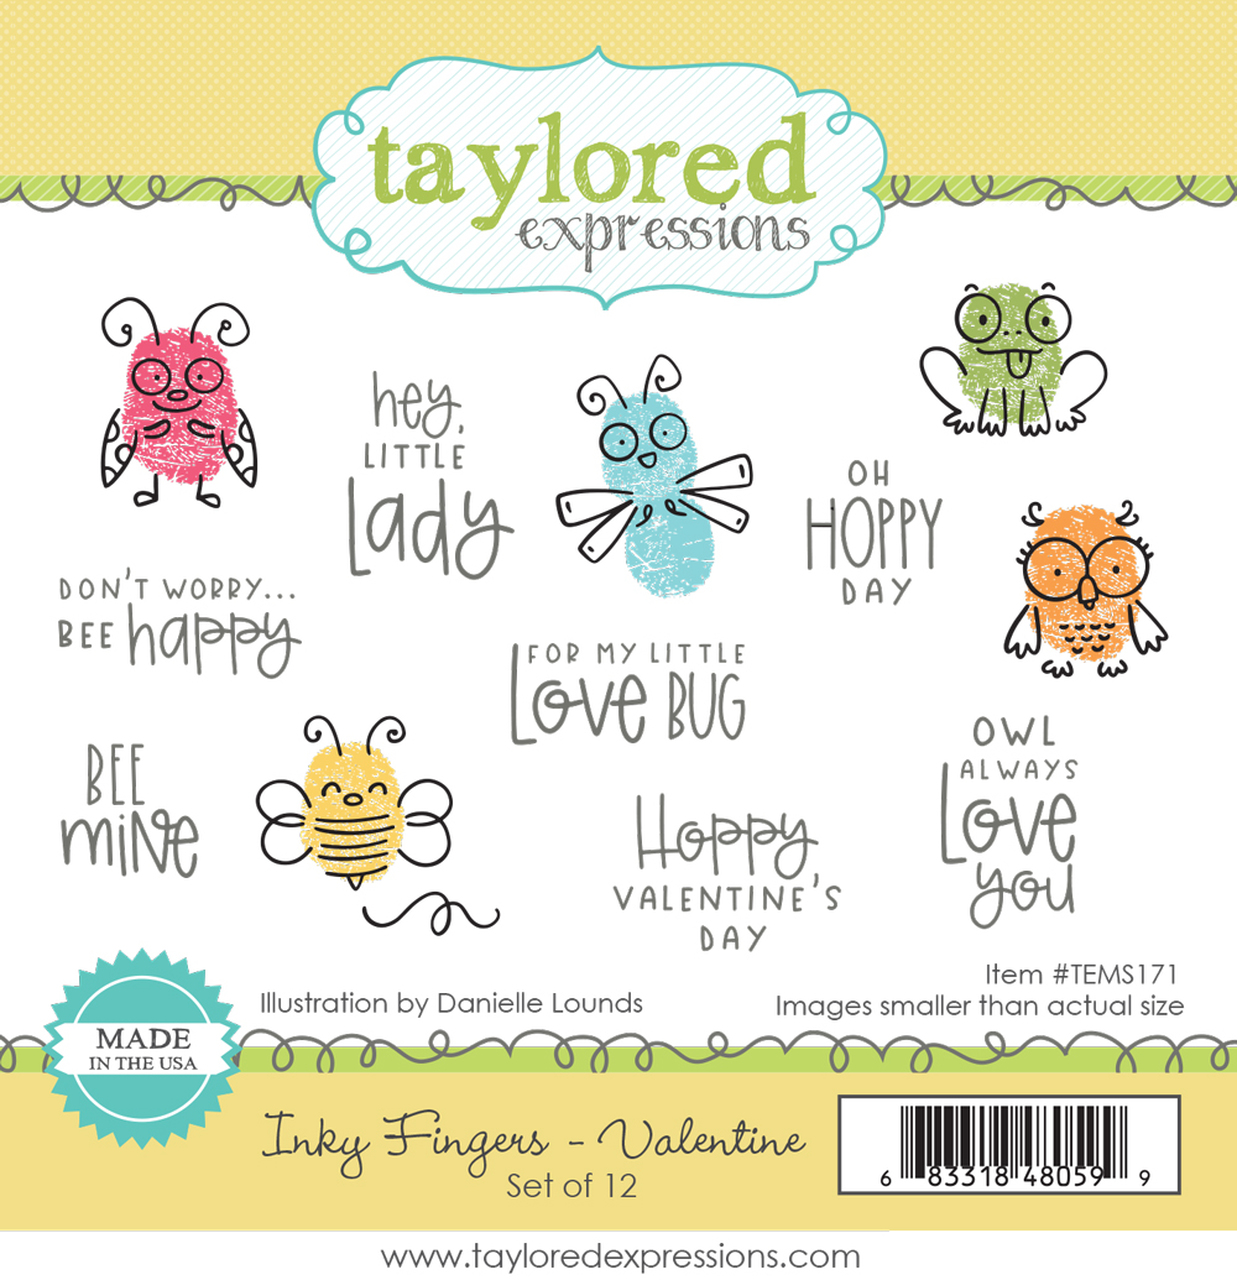 *NEW* - Taylored Expression - Inky Fingers - Valentine DUE IN FEBRUARY